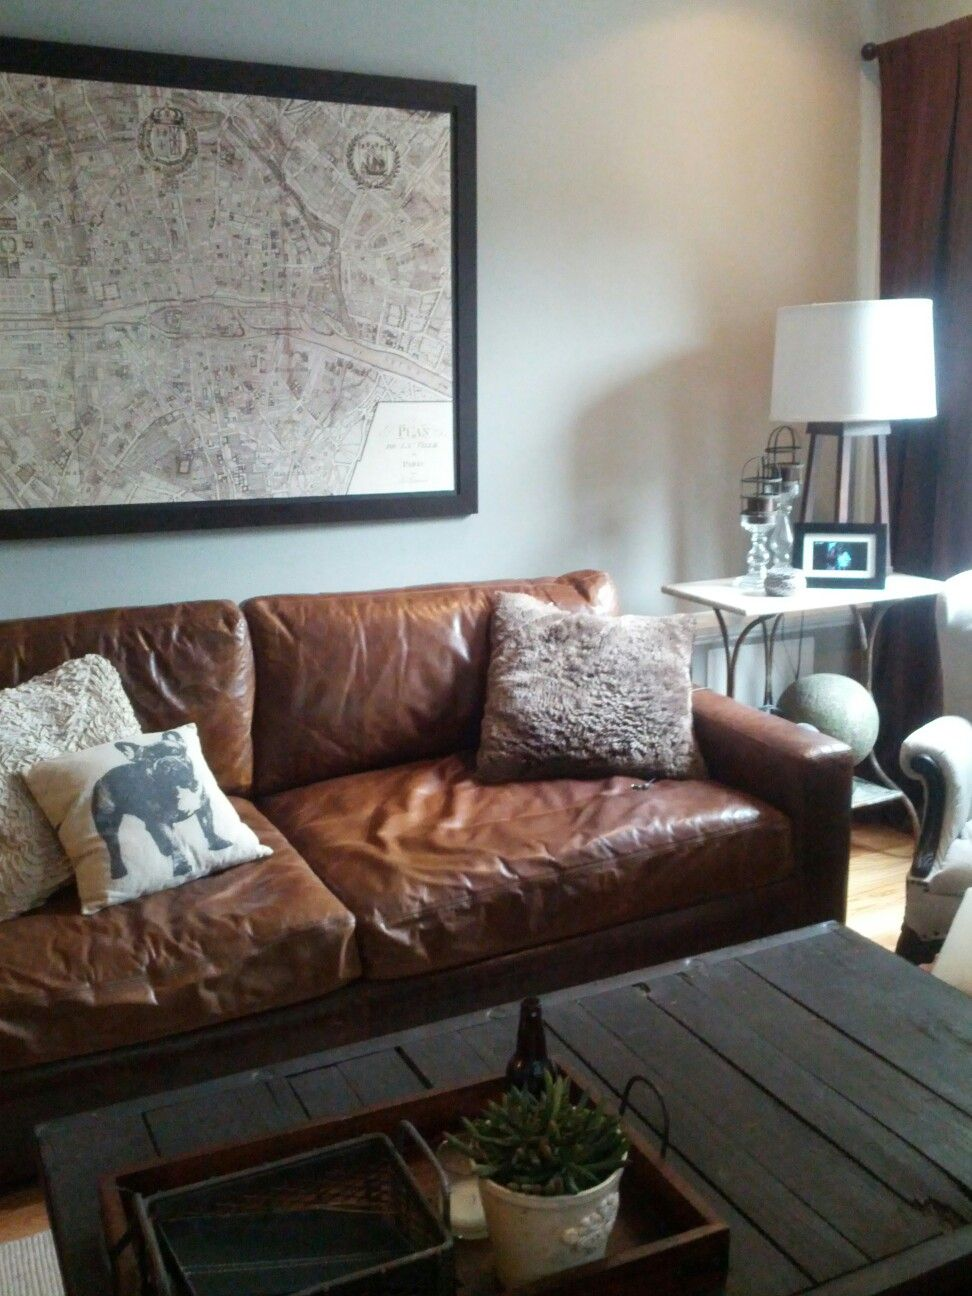 Restoration Hardware Leather Couch Pallet Coffee Table Pottery - Restoration hardware leather sofas